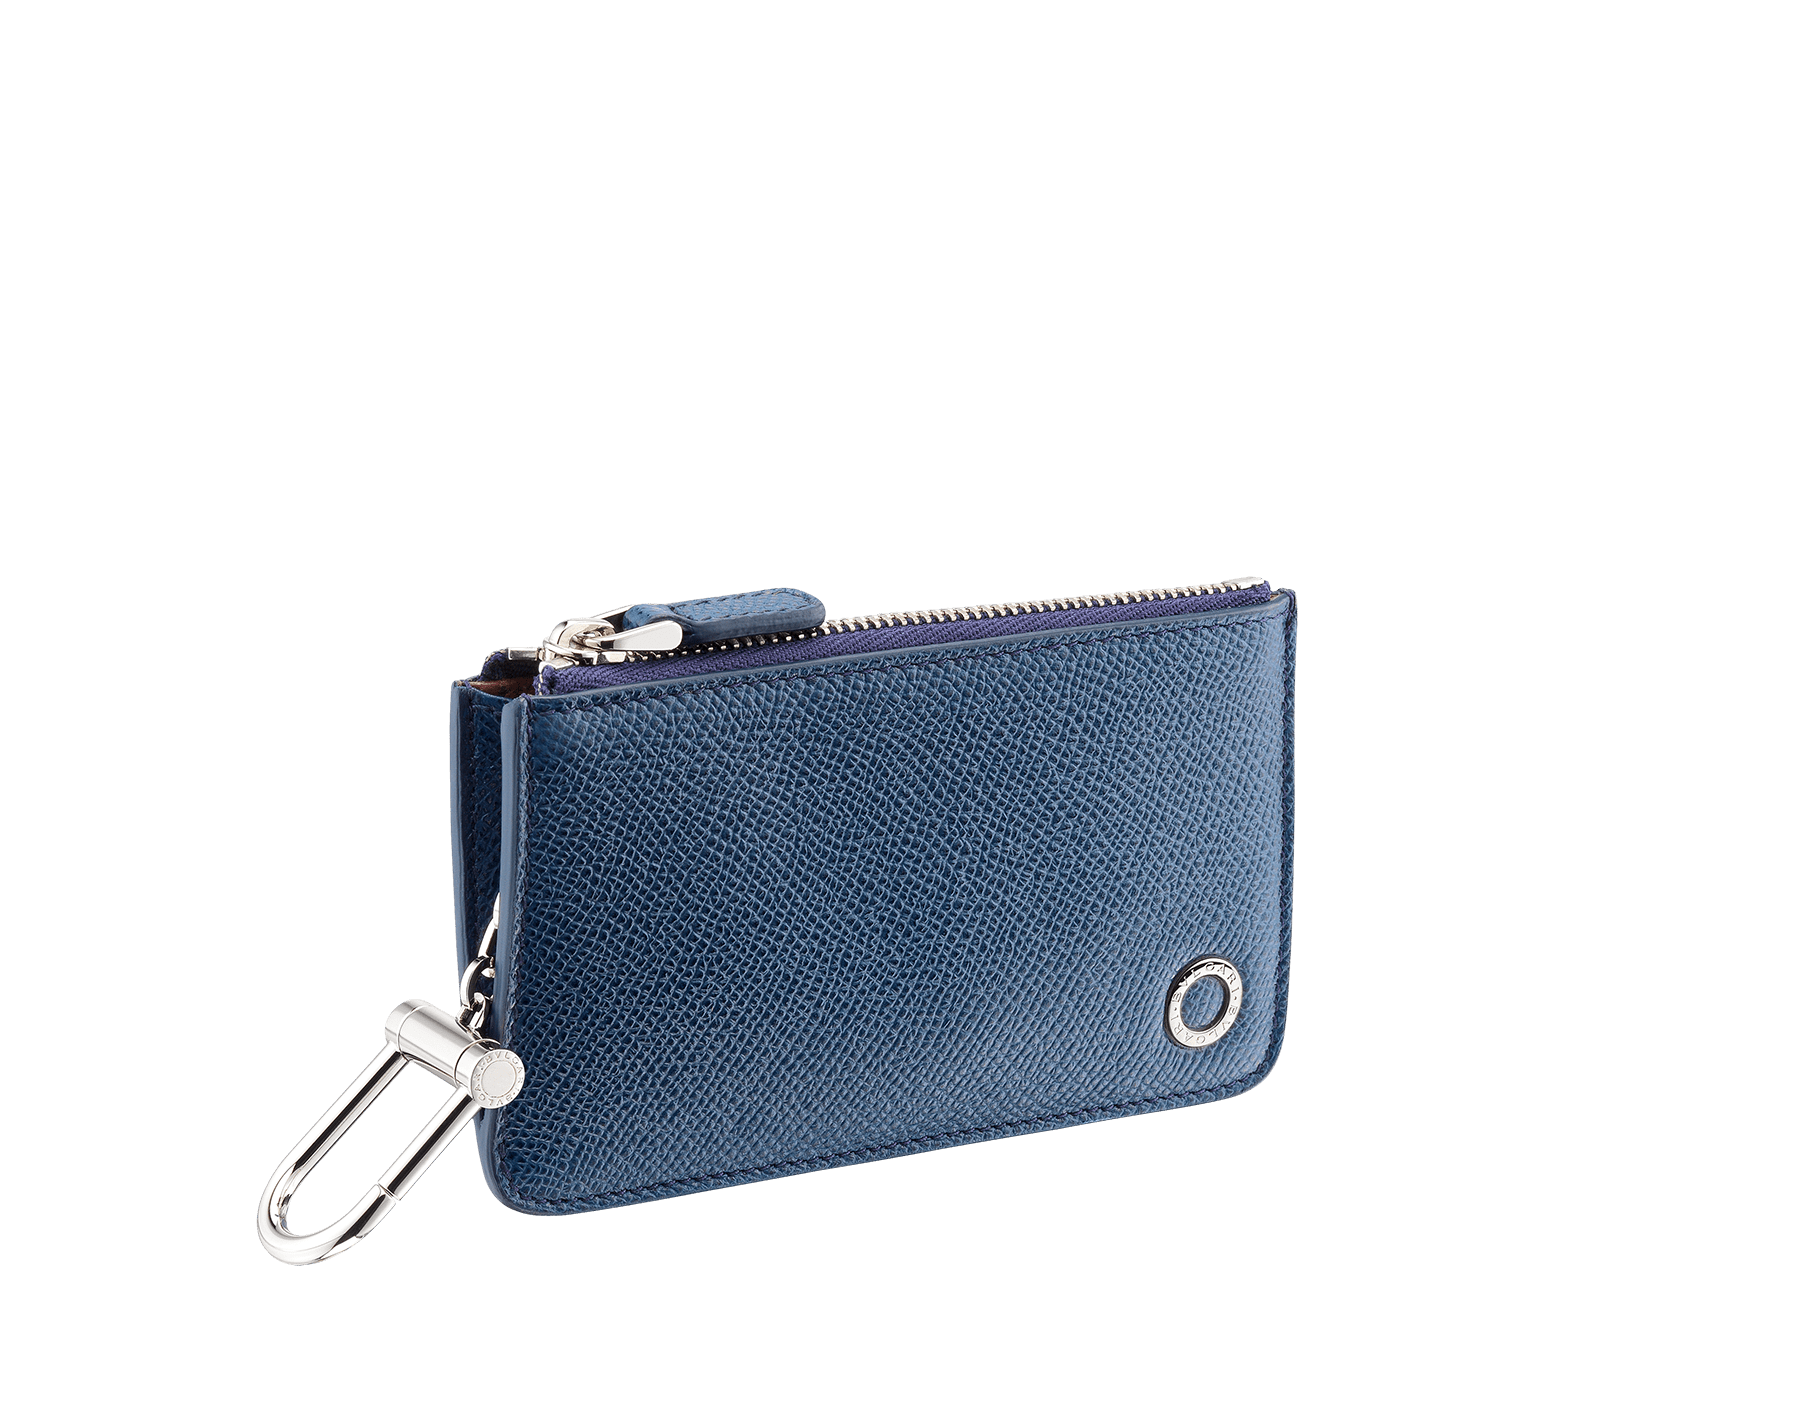 Zipped coin holder in denim sapphire grain calf leather and bordeaux nappa lining, with snap hook keyring and metal parts in brass palladium plating. Iconic BVLGARI BVLGARI motif. 282605 image 1